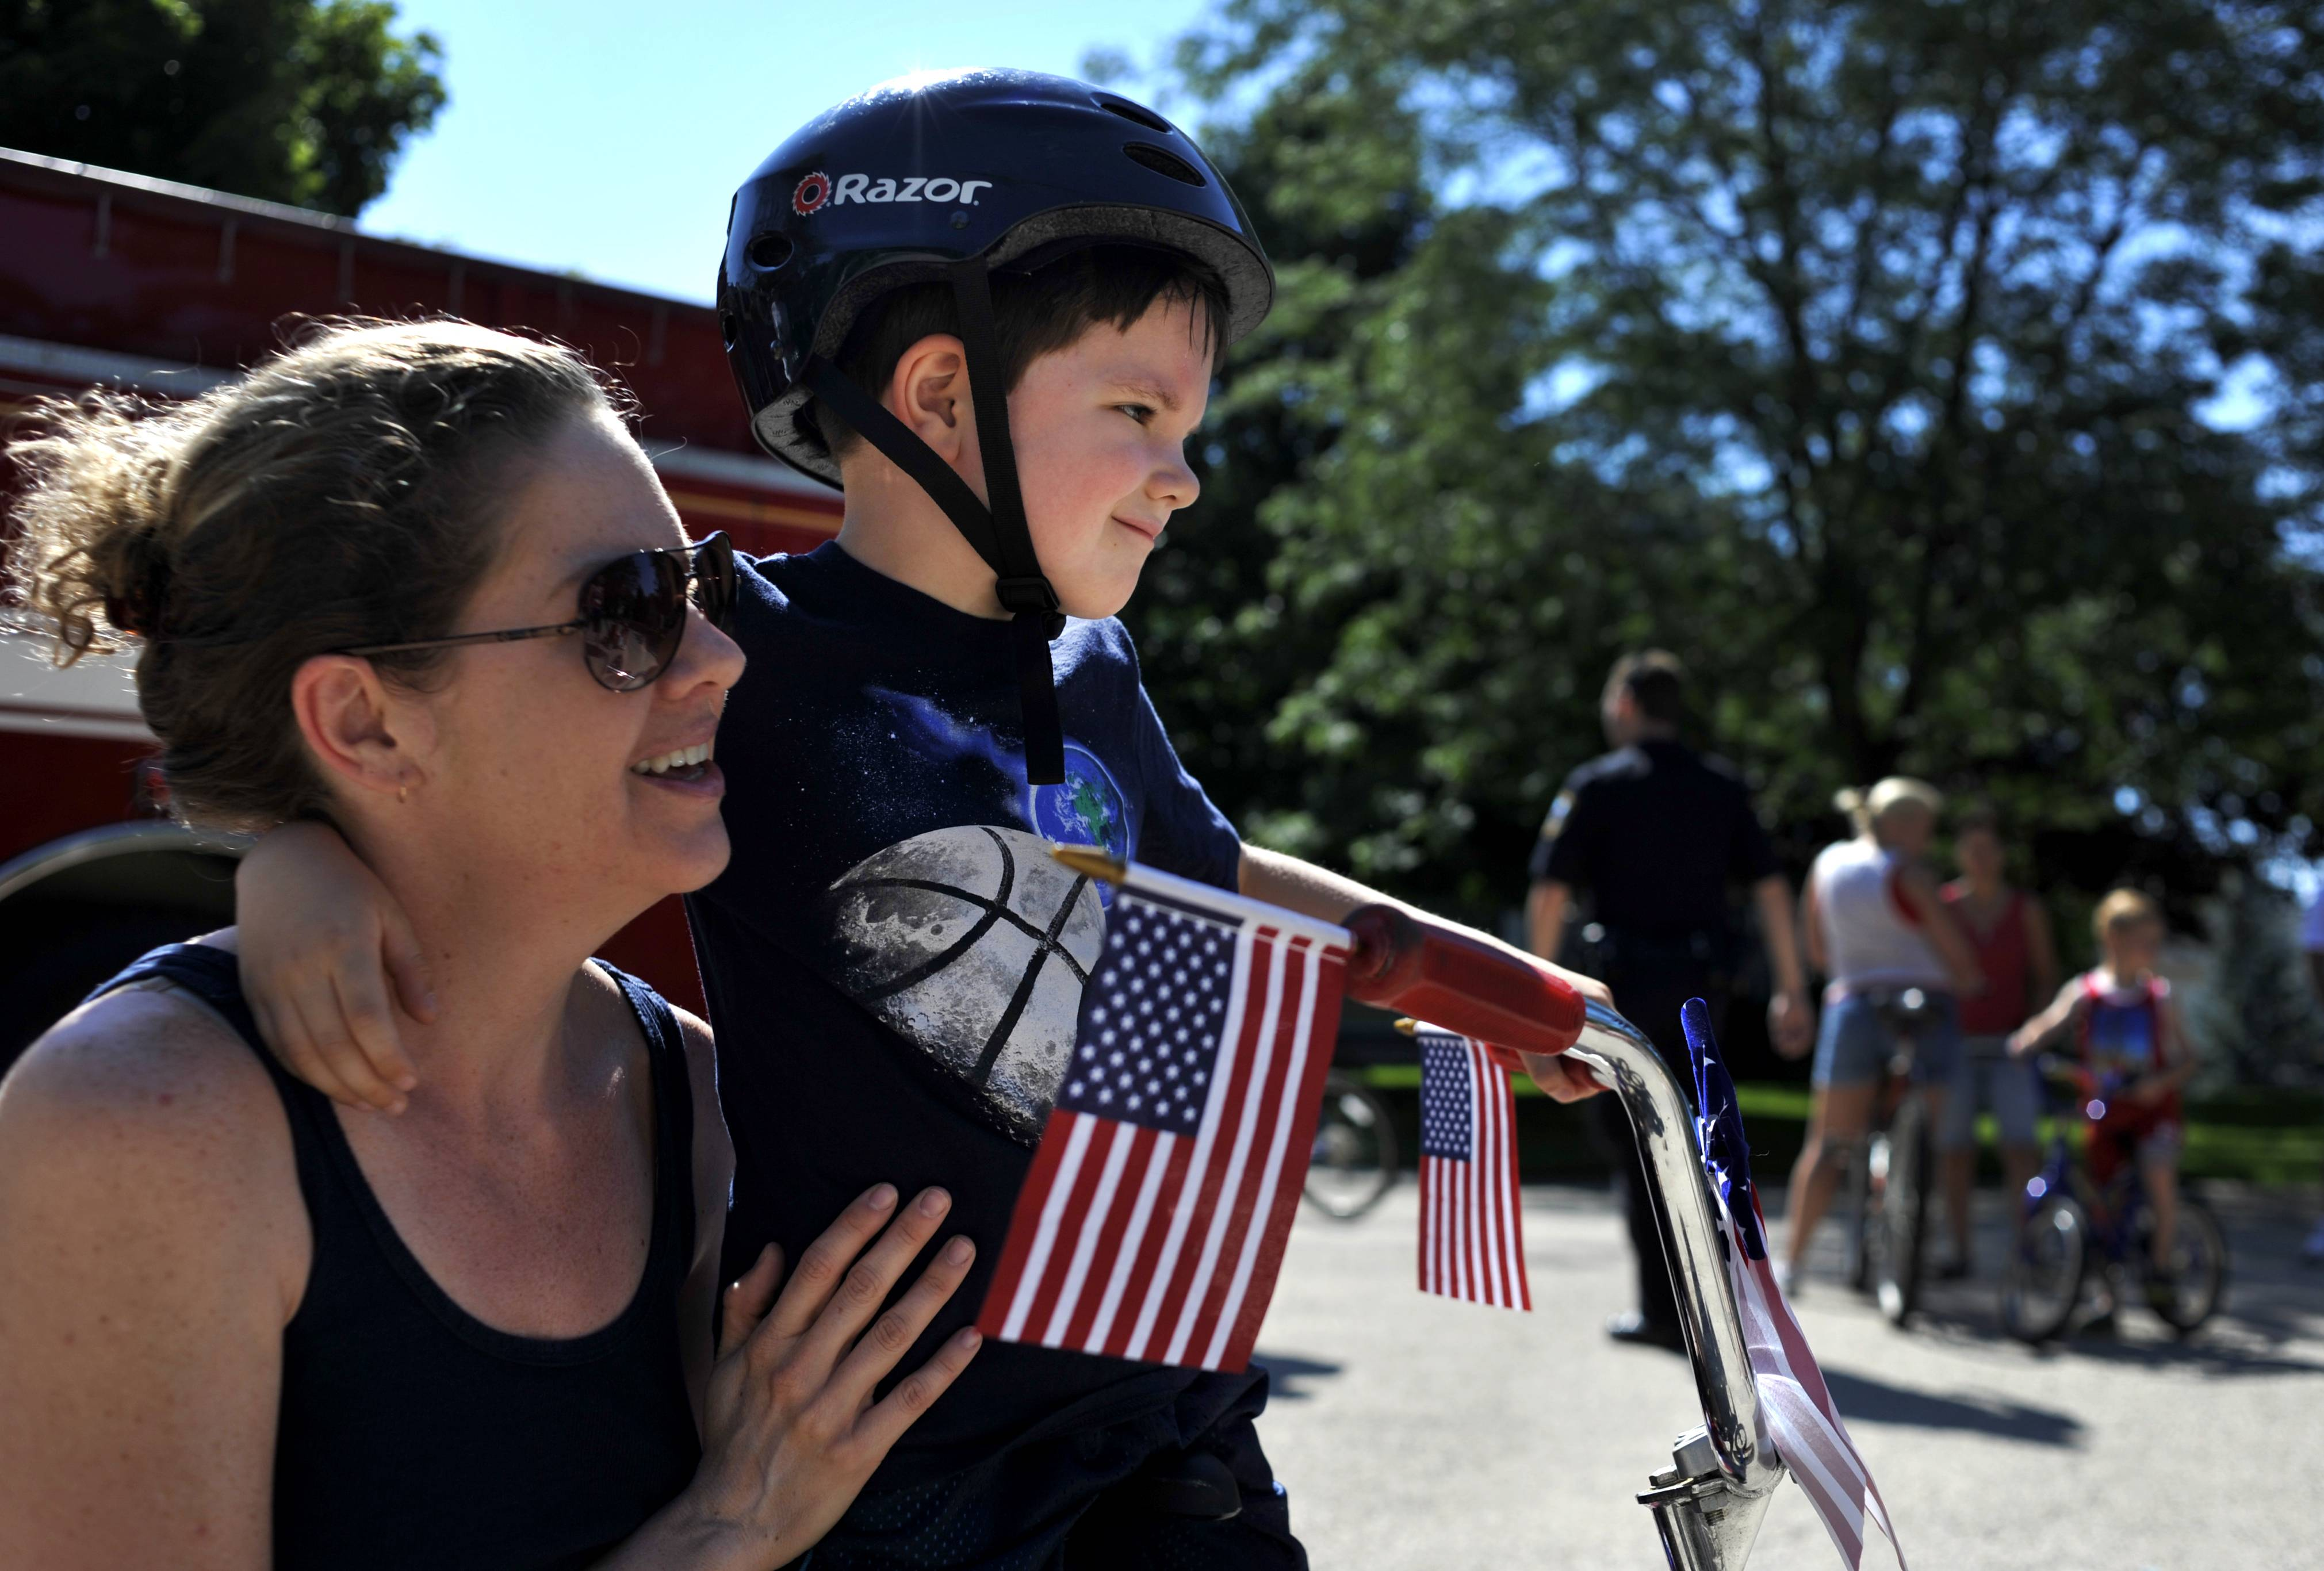 Ben Dawson, 5 of West Dundee receives encouragement from his mom, Katherine before the start of the Tartans/Hills neighborhood's annual Fourth of July kids' bike parade in West Dundee. The annual parade began in 1991 and is organized by the neighborhood, with Tim and Elizabeth Ward heading the organization of the event for the past few years.